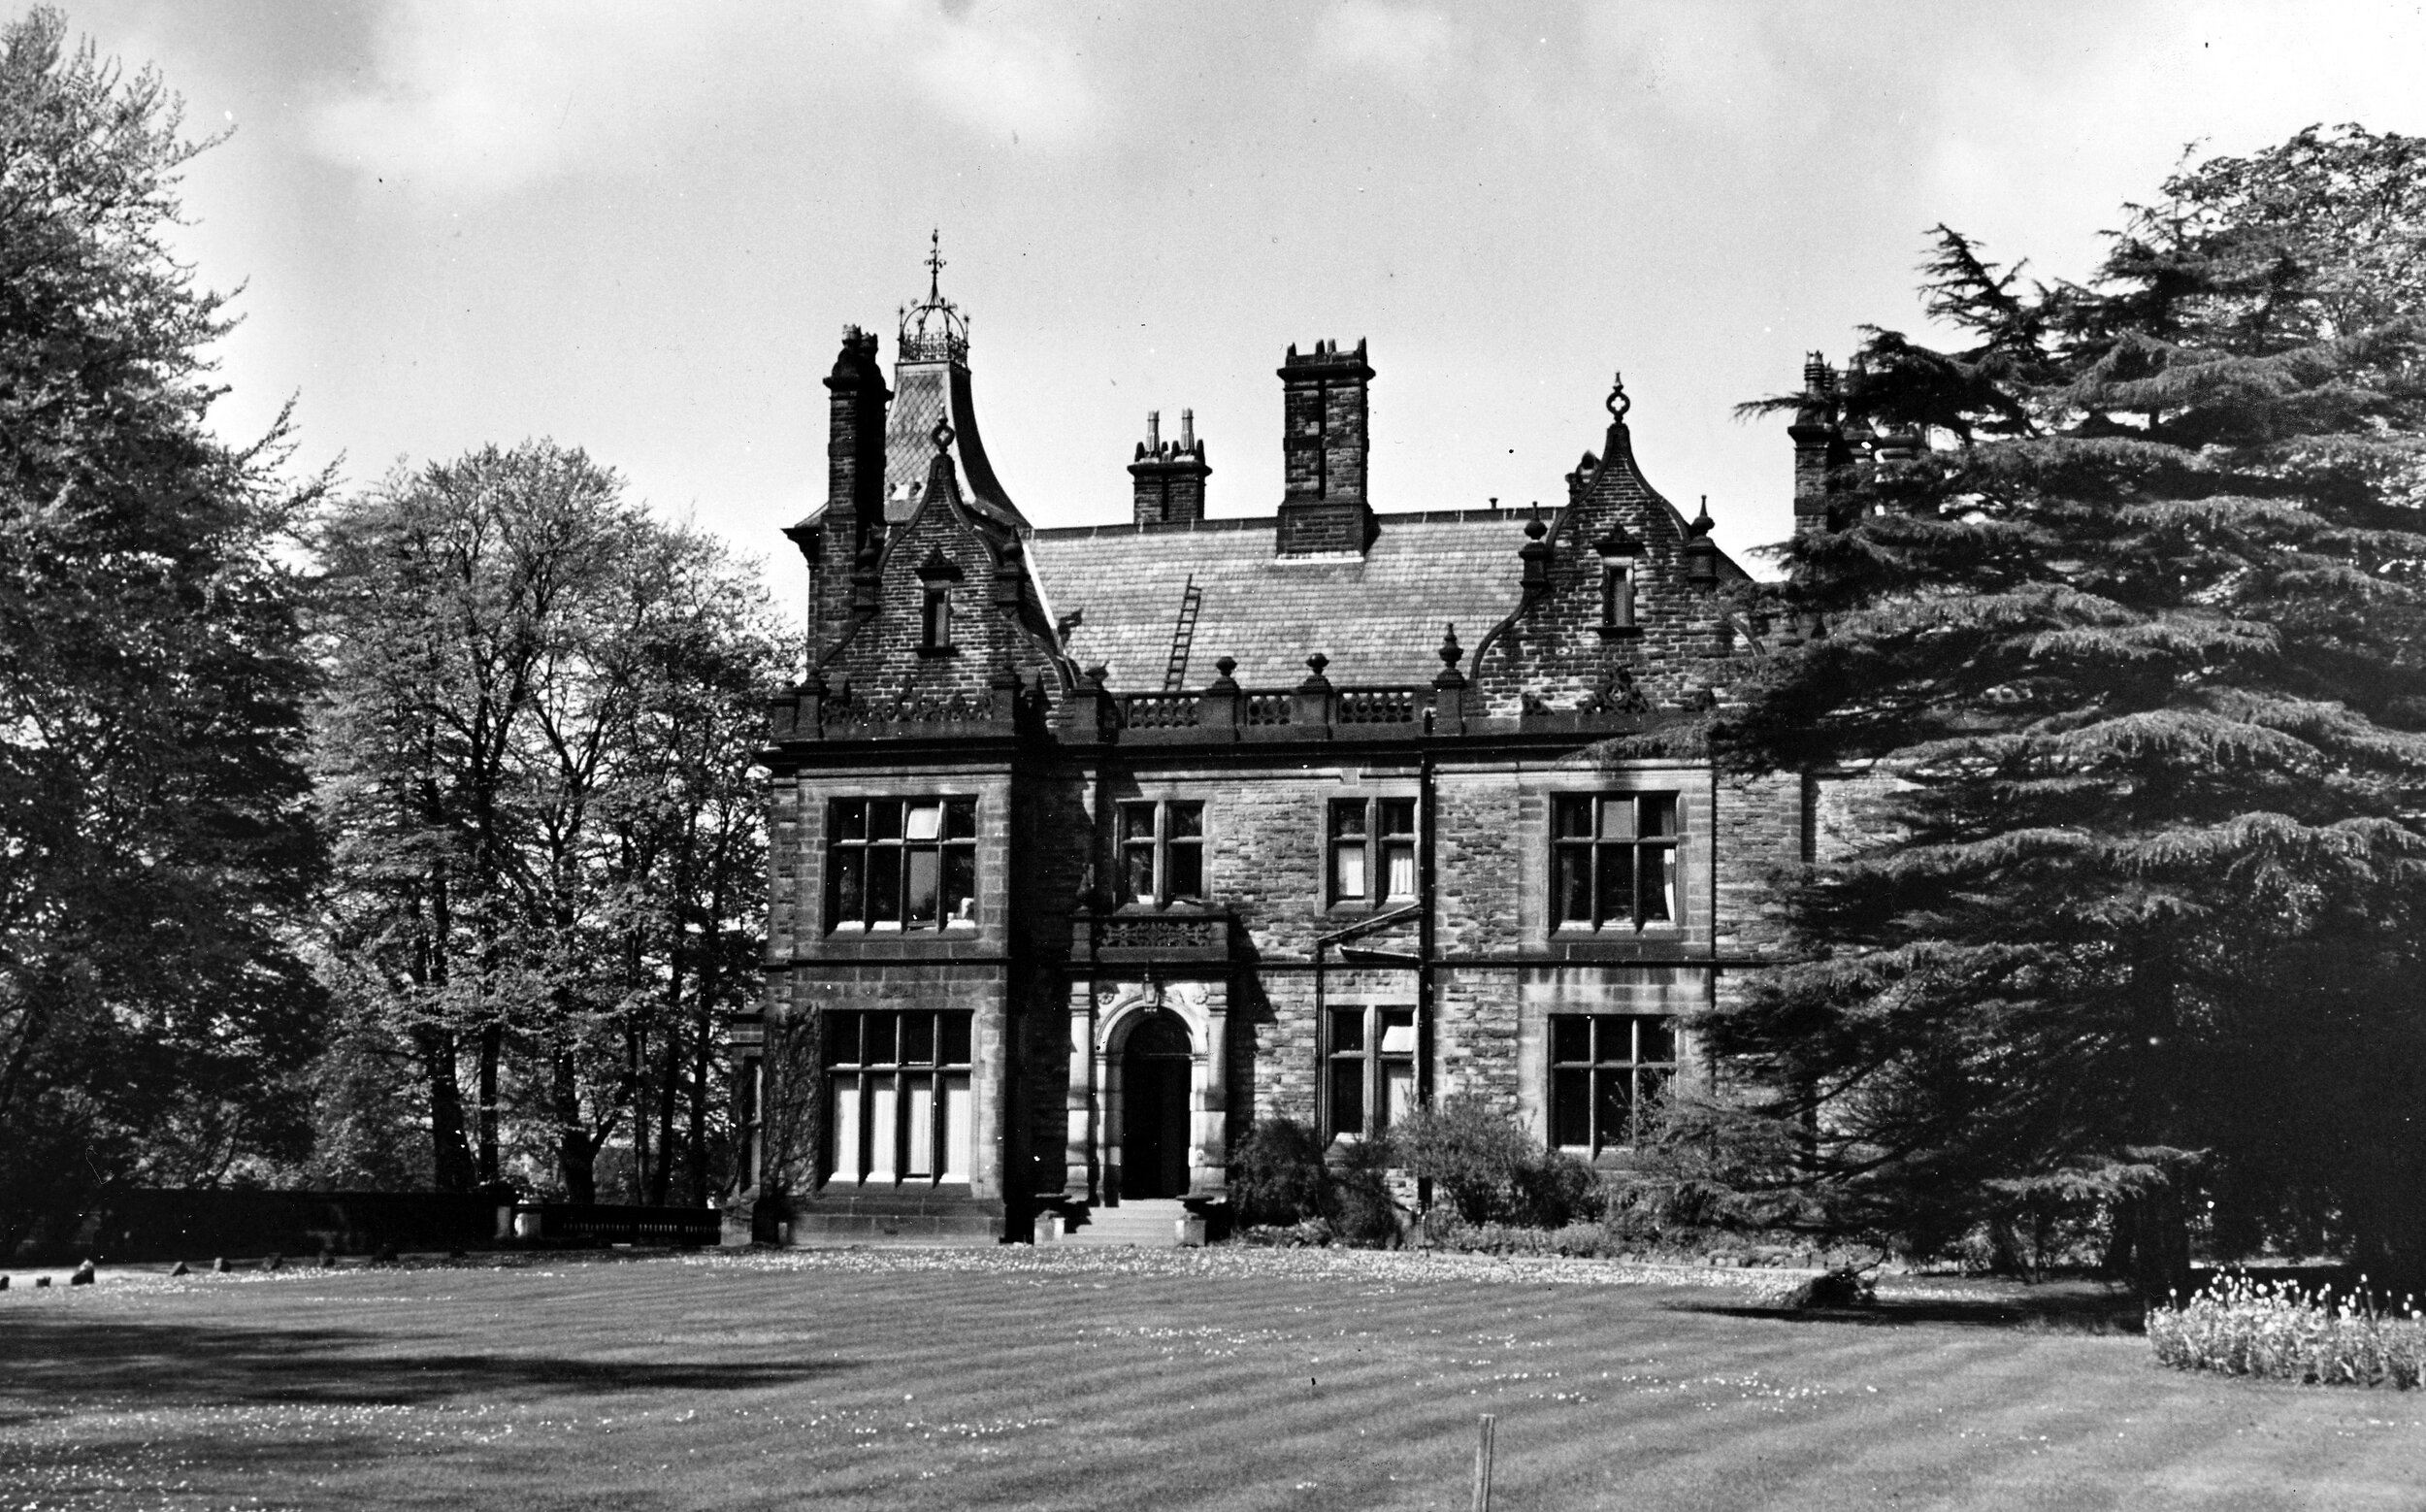 19  Oxley Hall, formerly Weetwood Villa, 1916